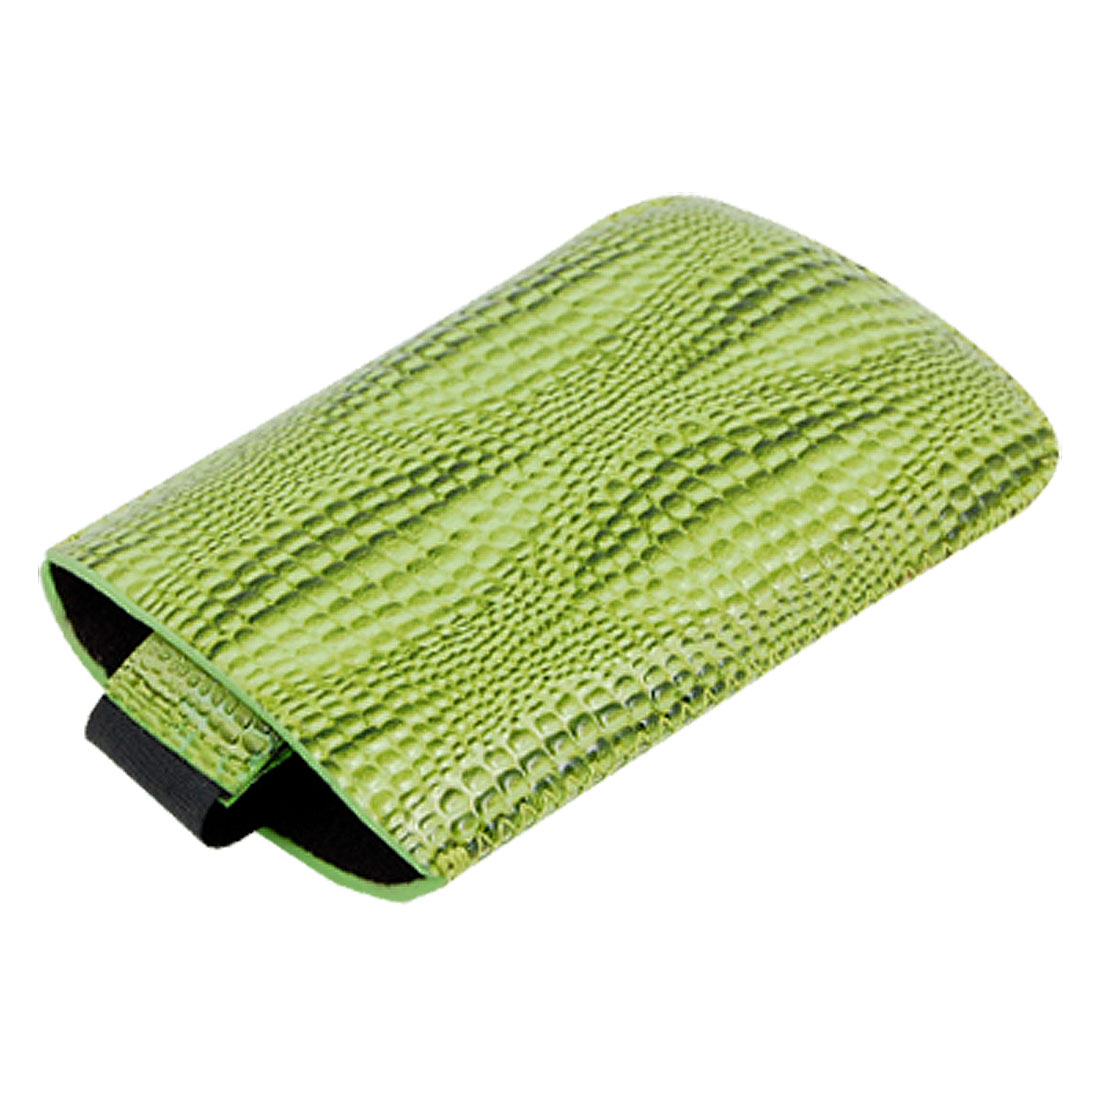 Green Faux Leather Snakeskin Design Pull Up Sleeve Case for Nokia 5800